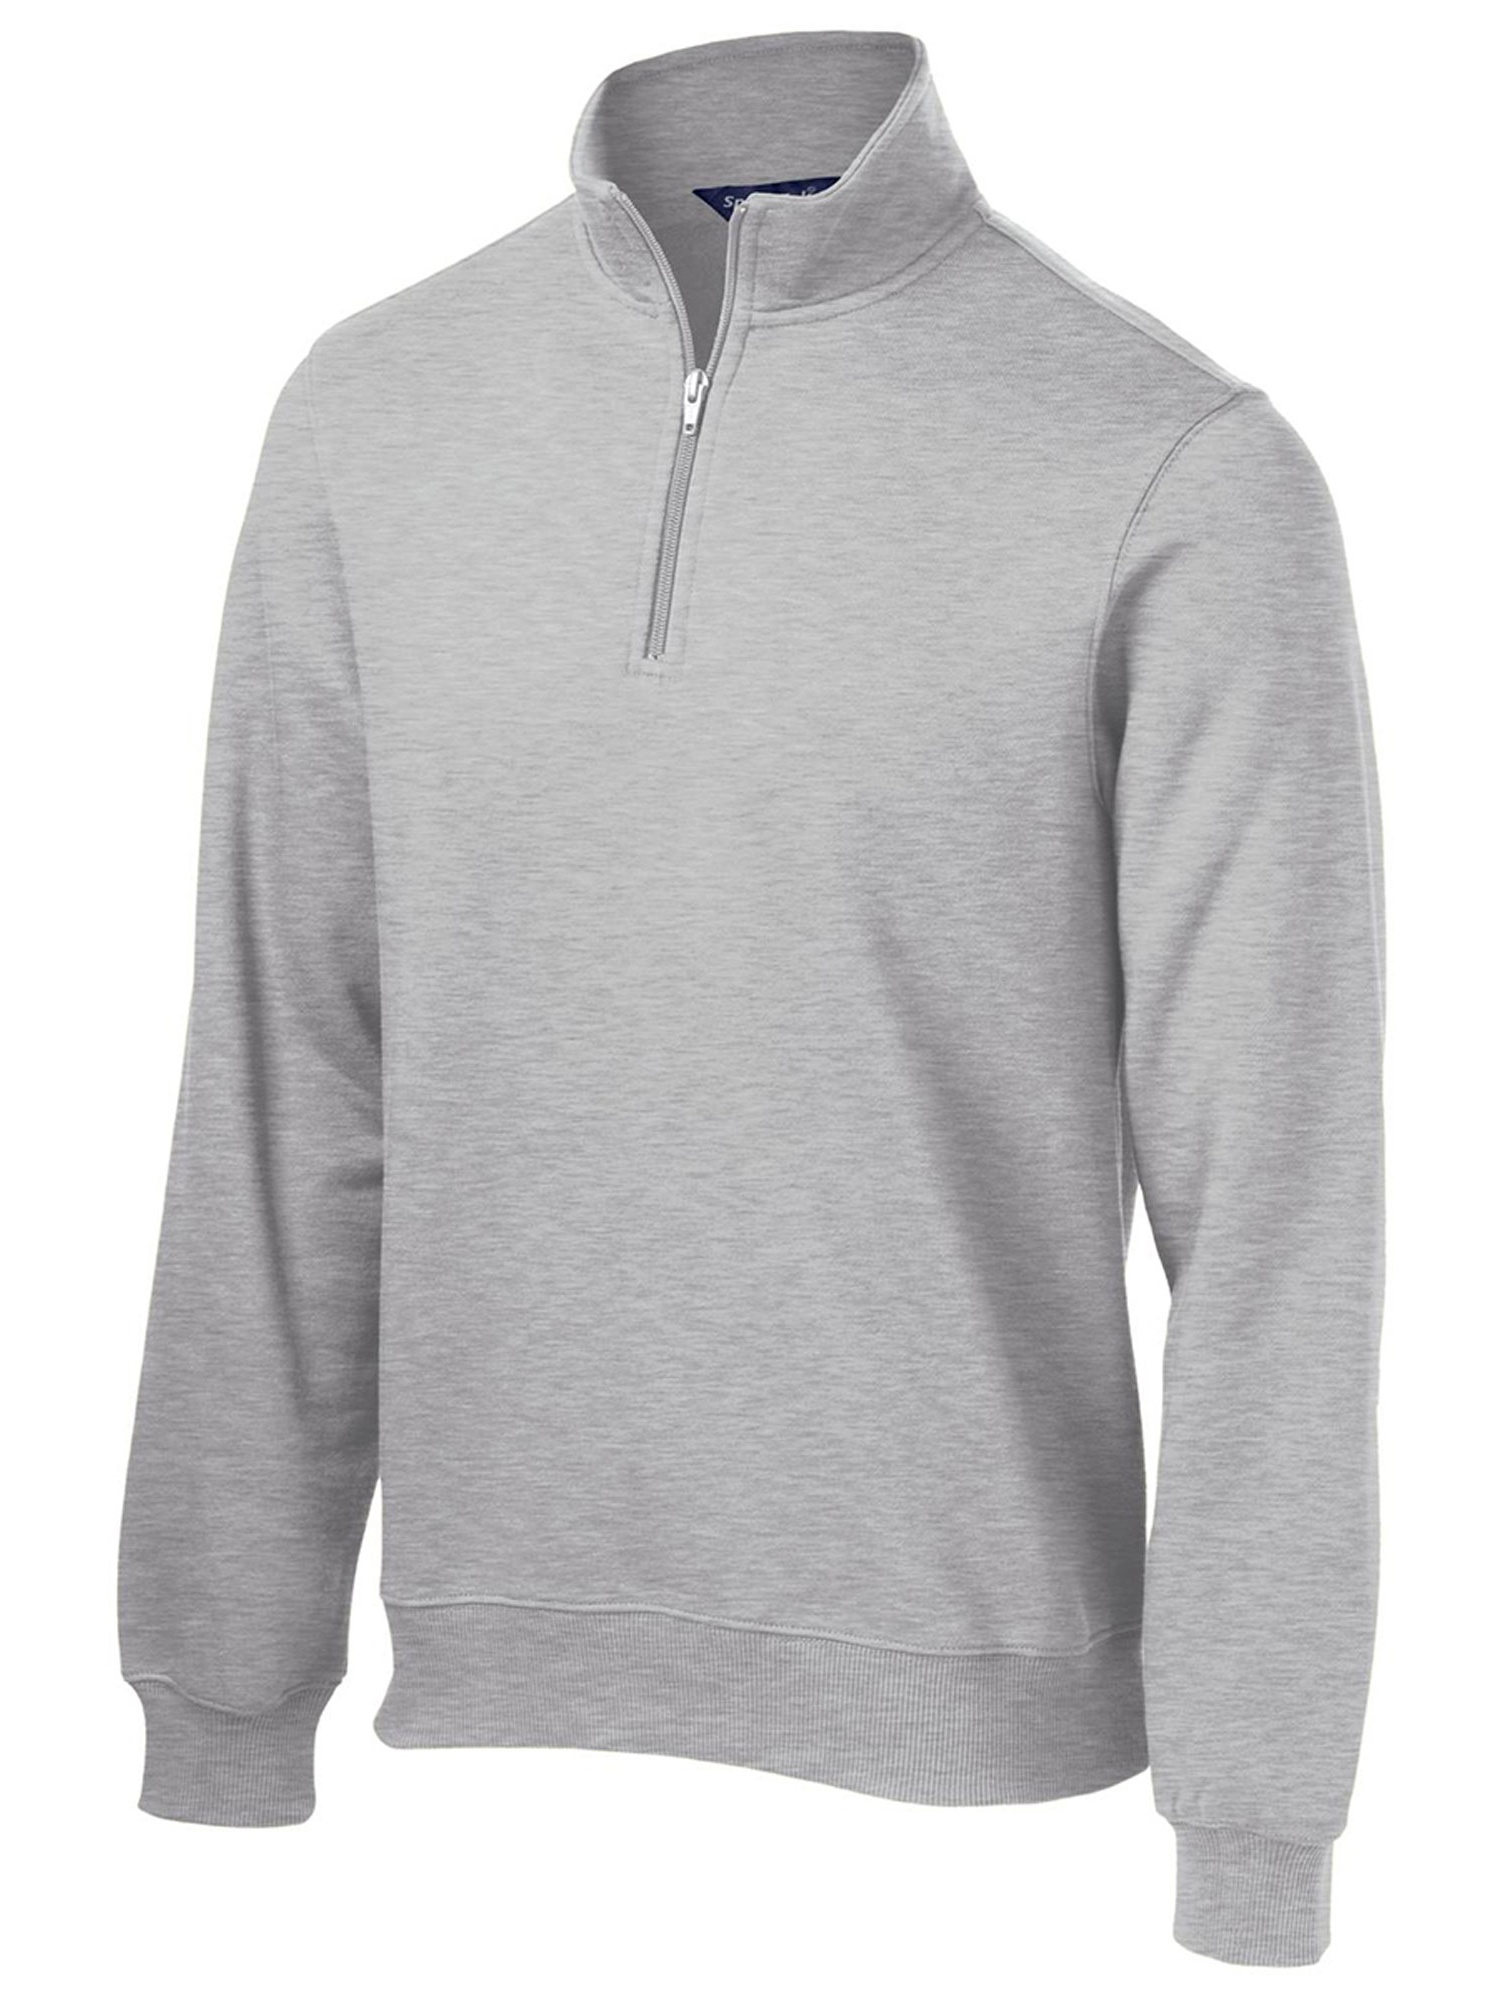 Sport-Tek Men's Big And Tall 1/4-Zip Waistband Sweatshirt